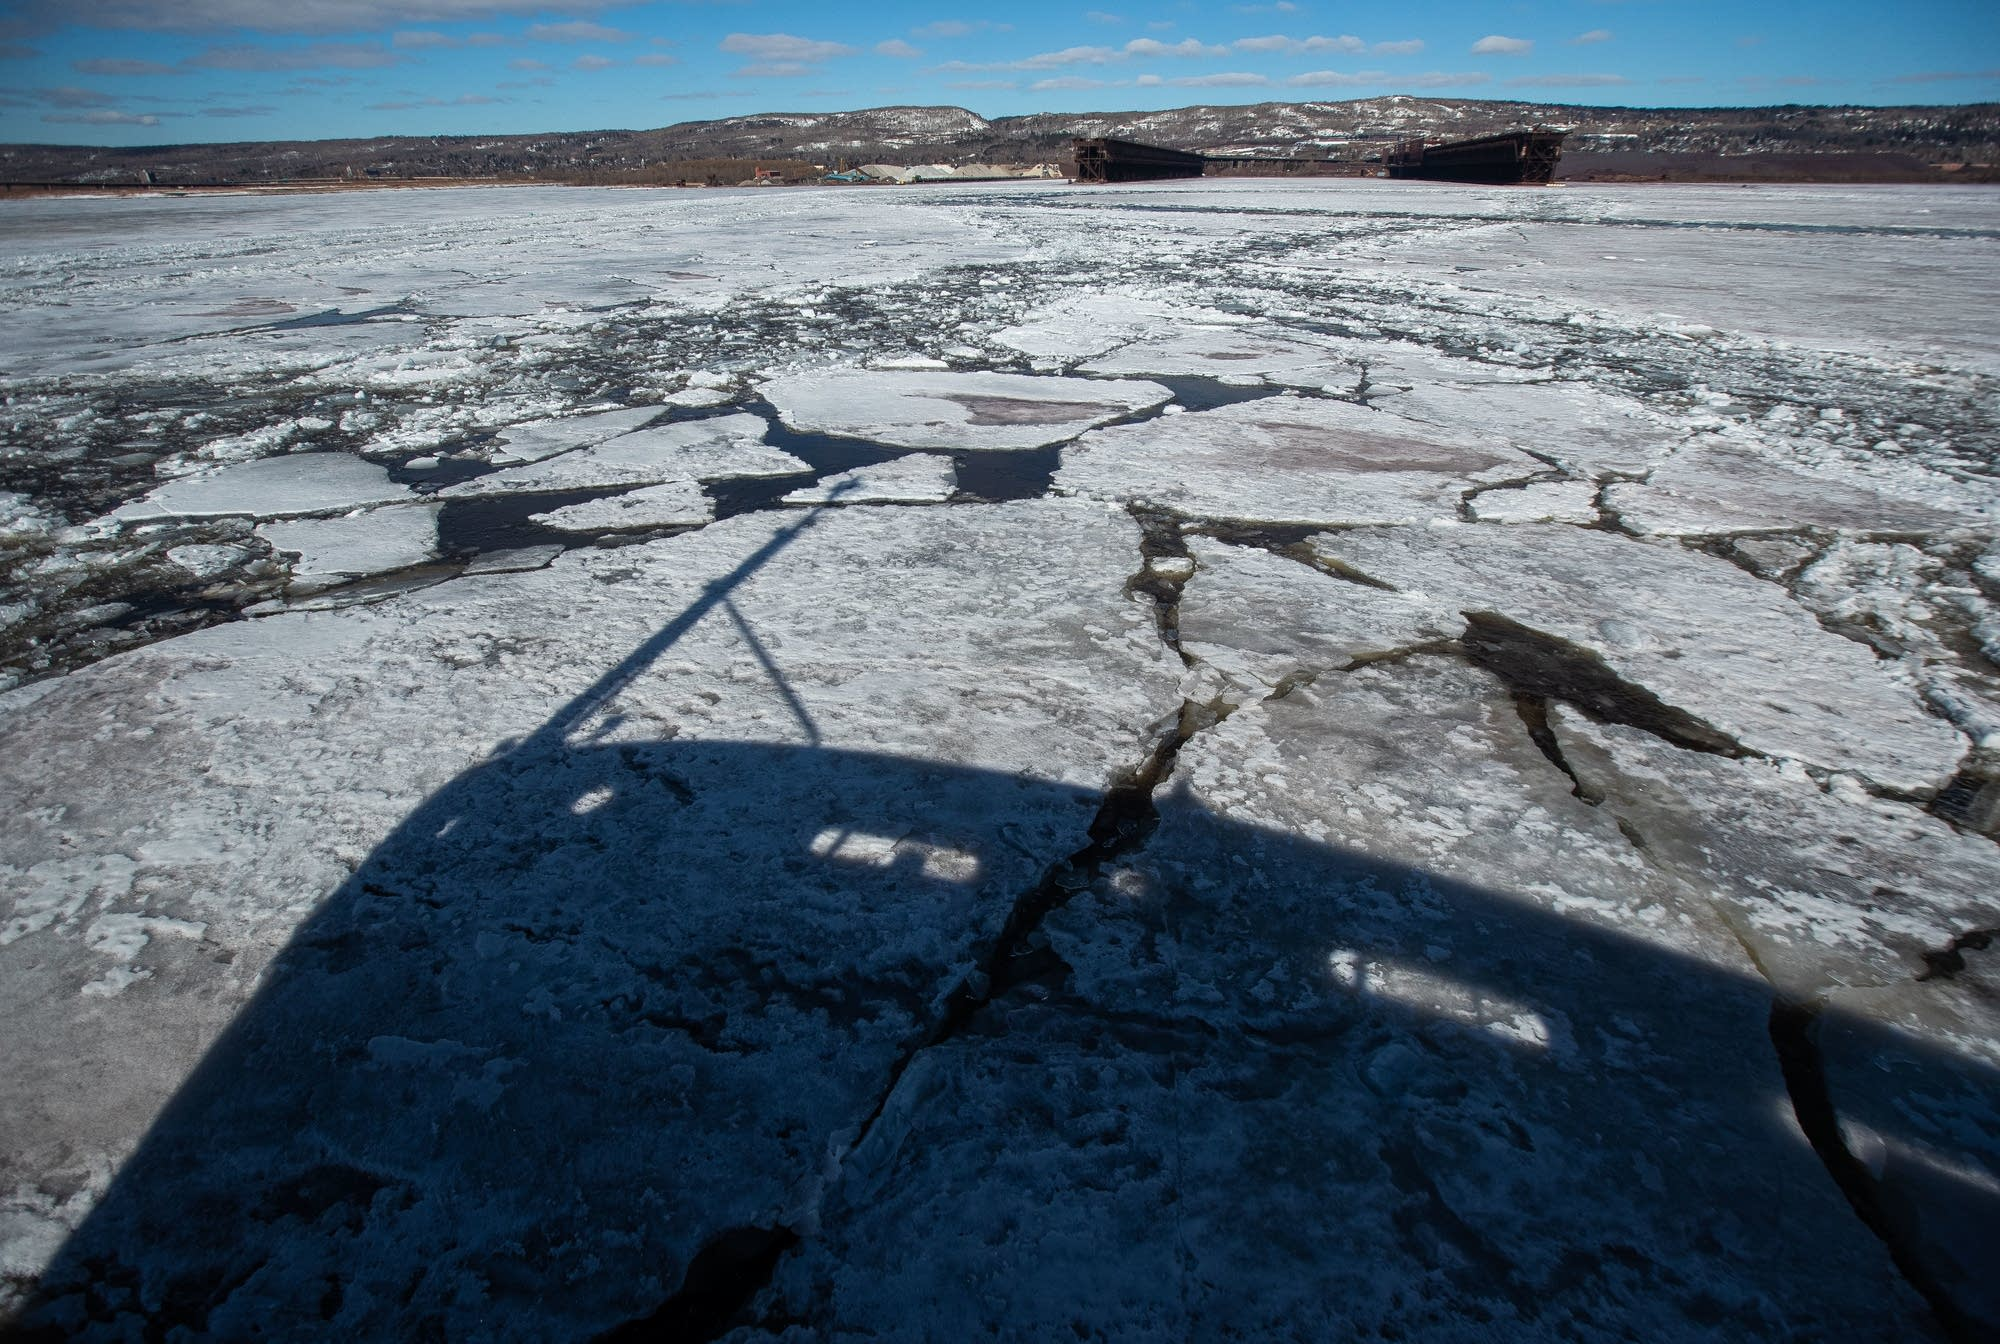 A shadow of the U.S. Coast Guard Cutter Alder sits on the ice.